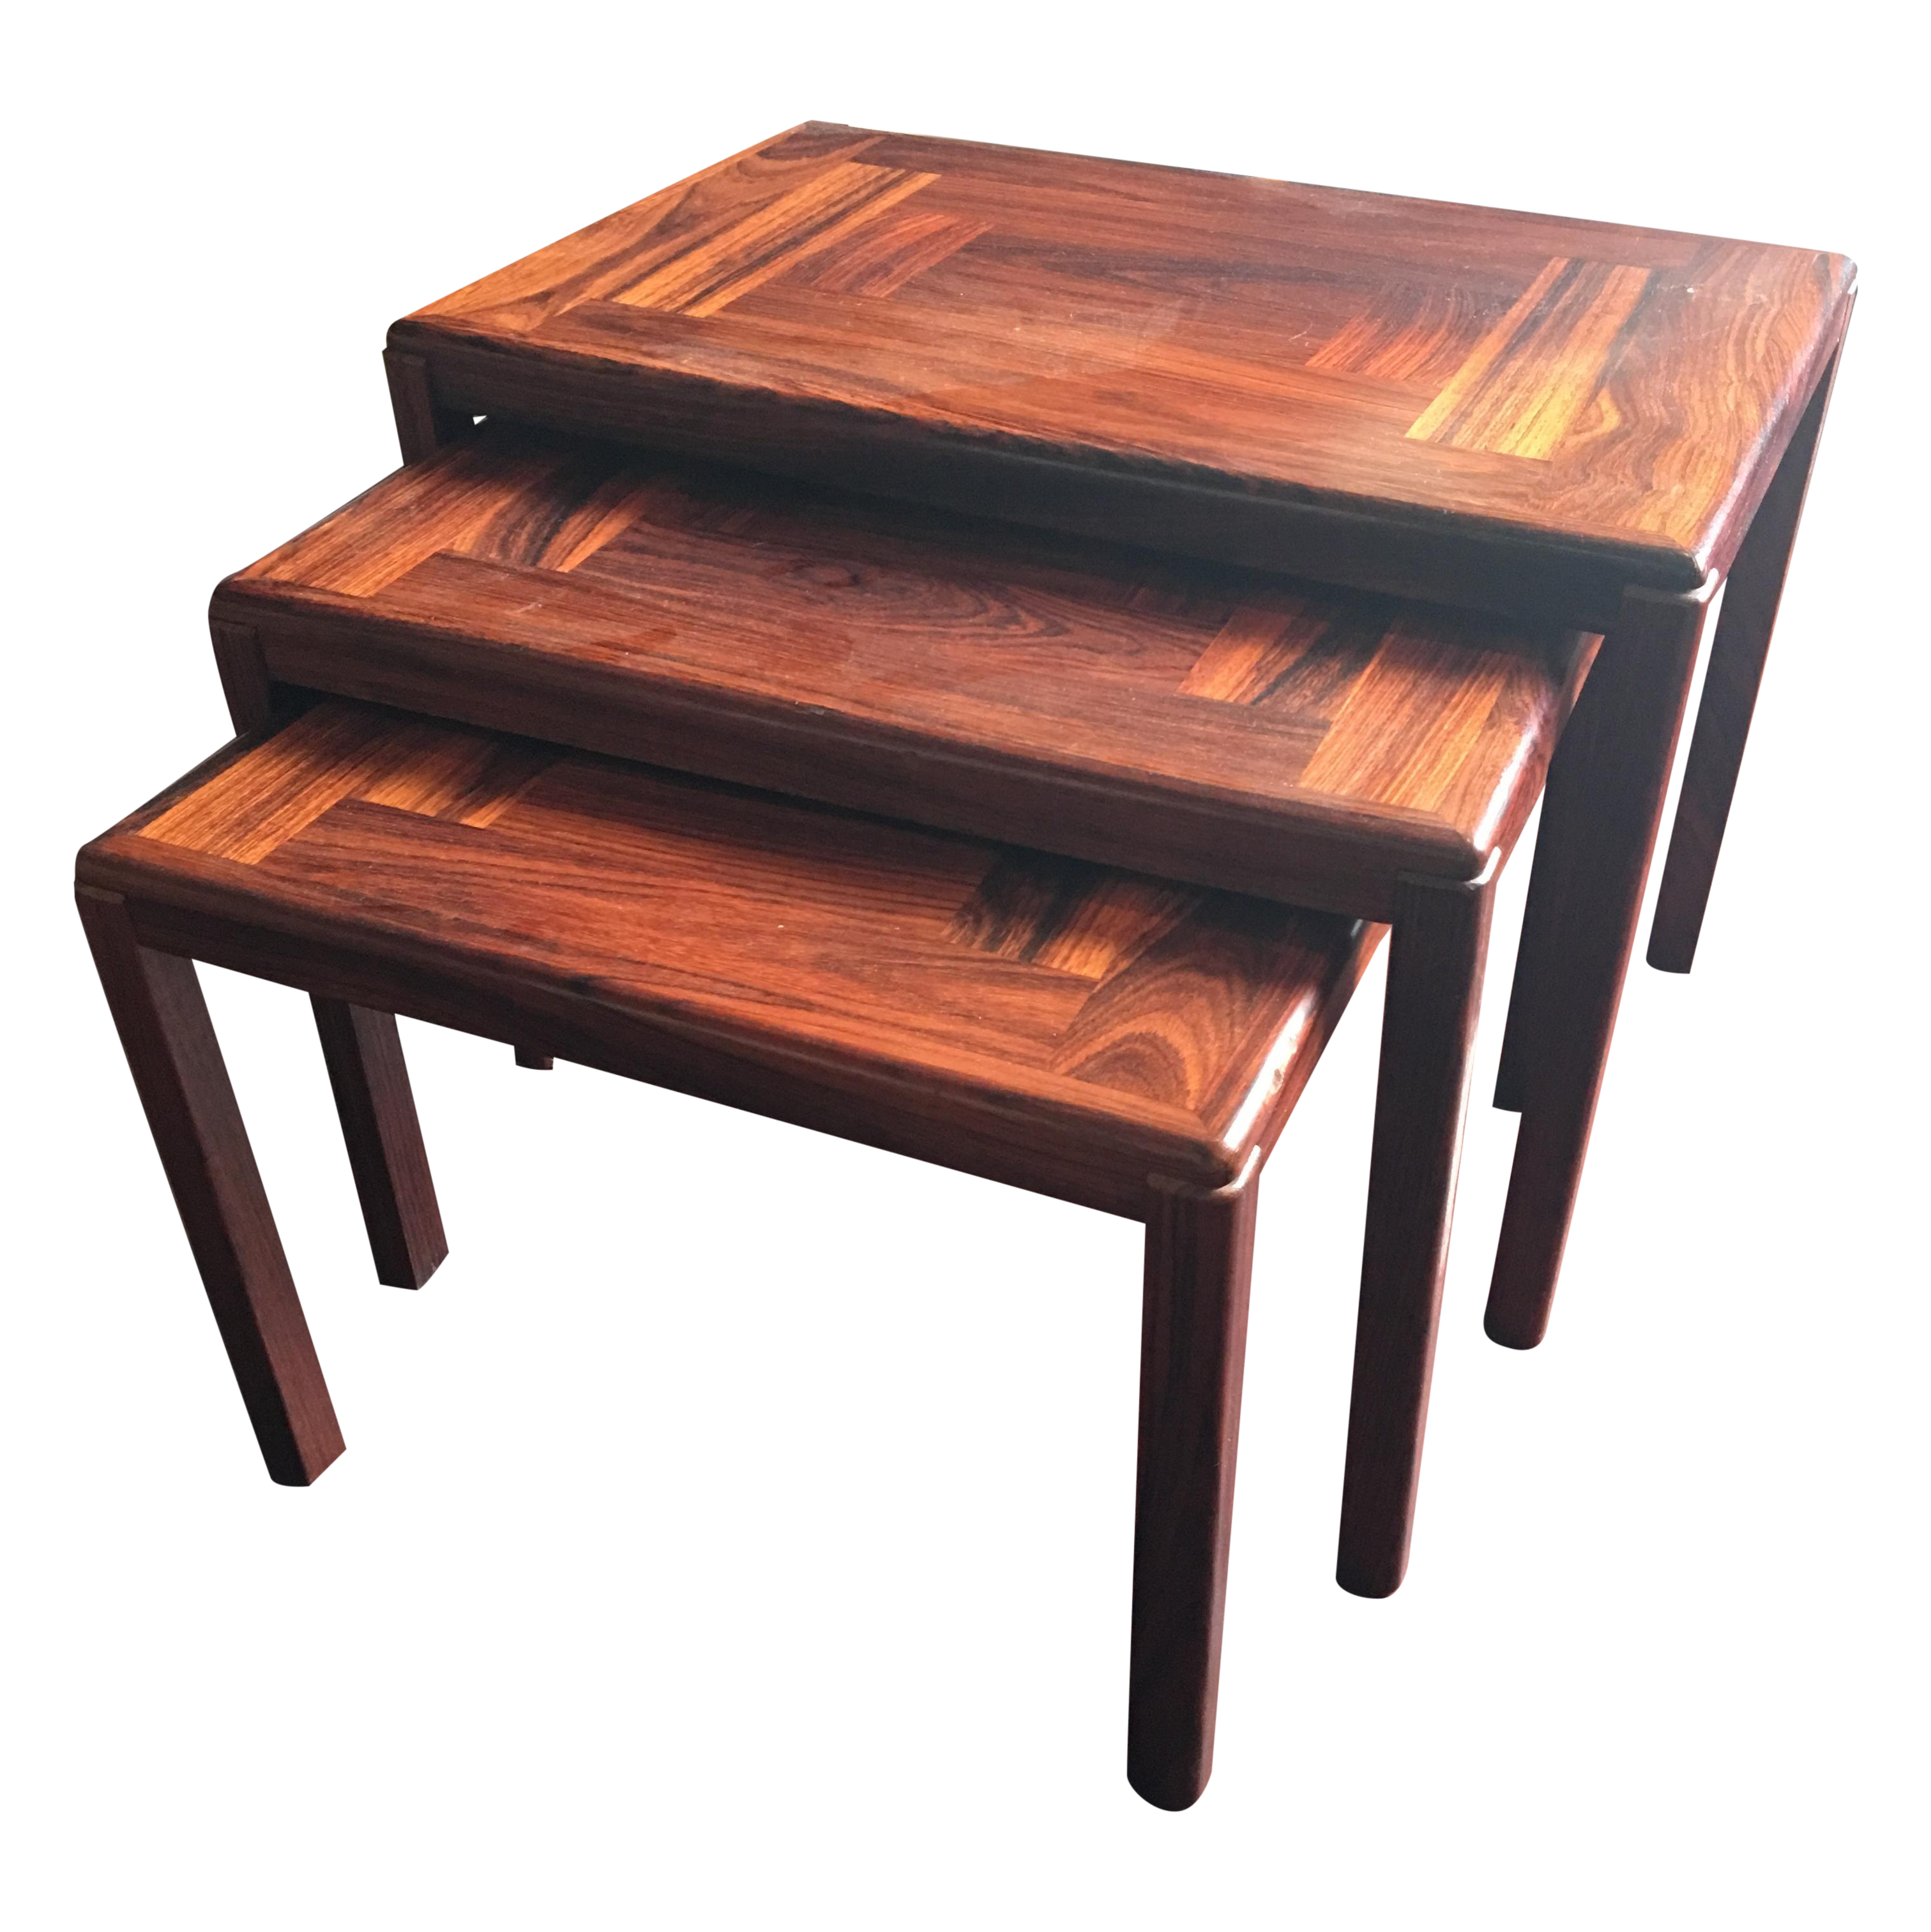 Modern Danish Nesting Tables Chairish. Full resolution‎  image, nominally Width 3024 Height 3025 pixels, image with #BB5910.